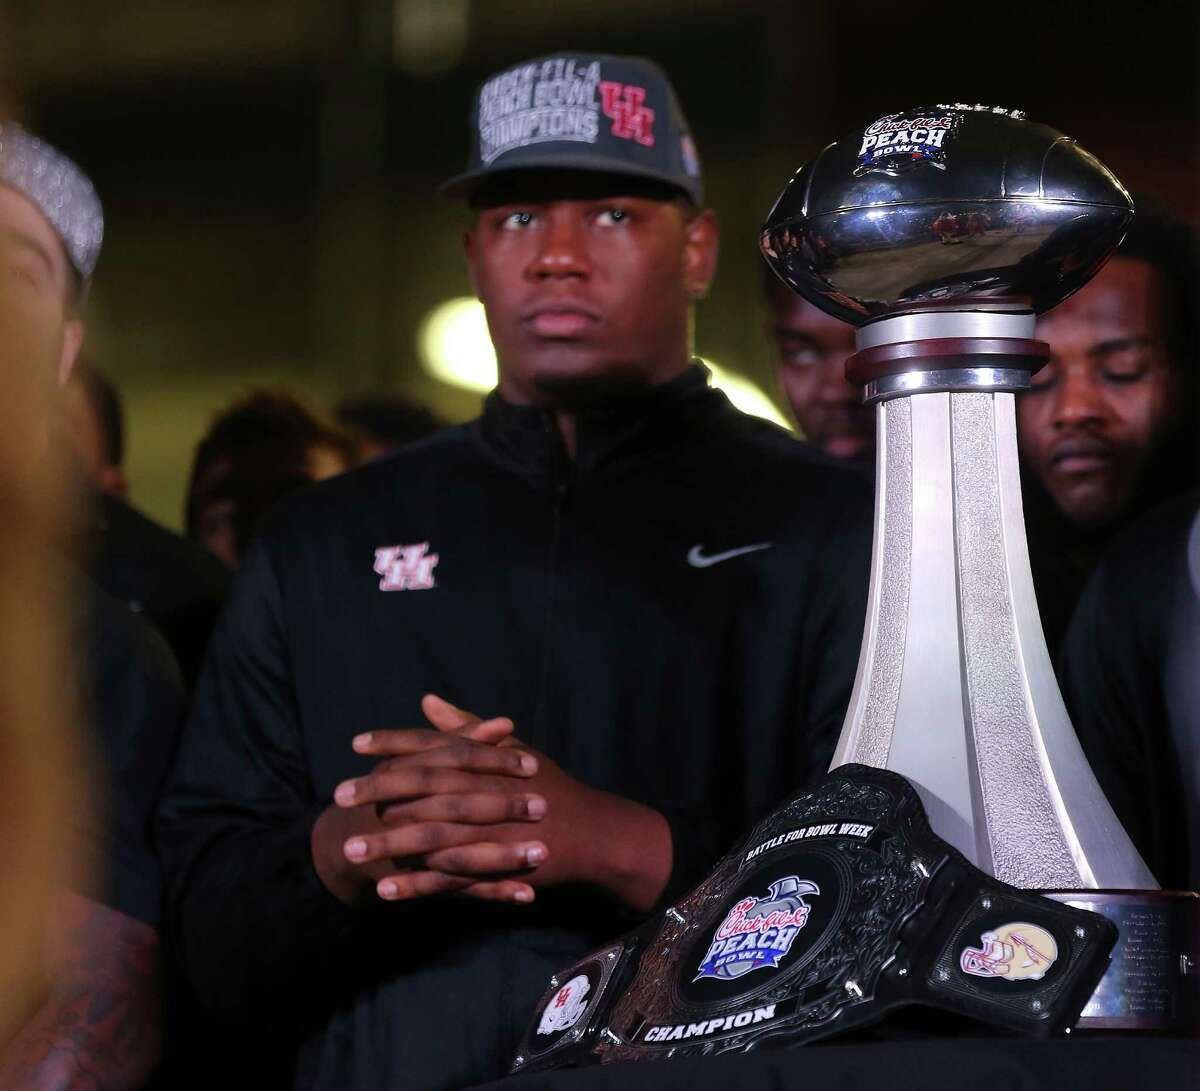 The Peach Bowl trophy is on display during a rally for the UH football team's Peach Bowl win outside TDECU Stadium on Monday, Feb. 1, 2016.